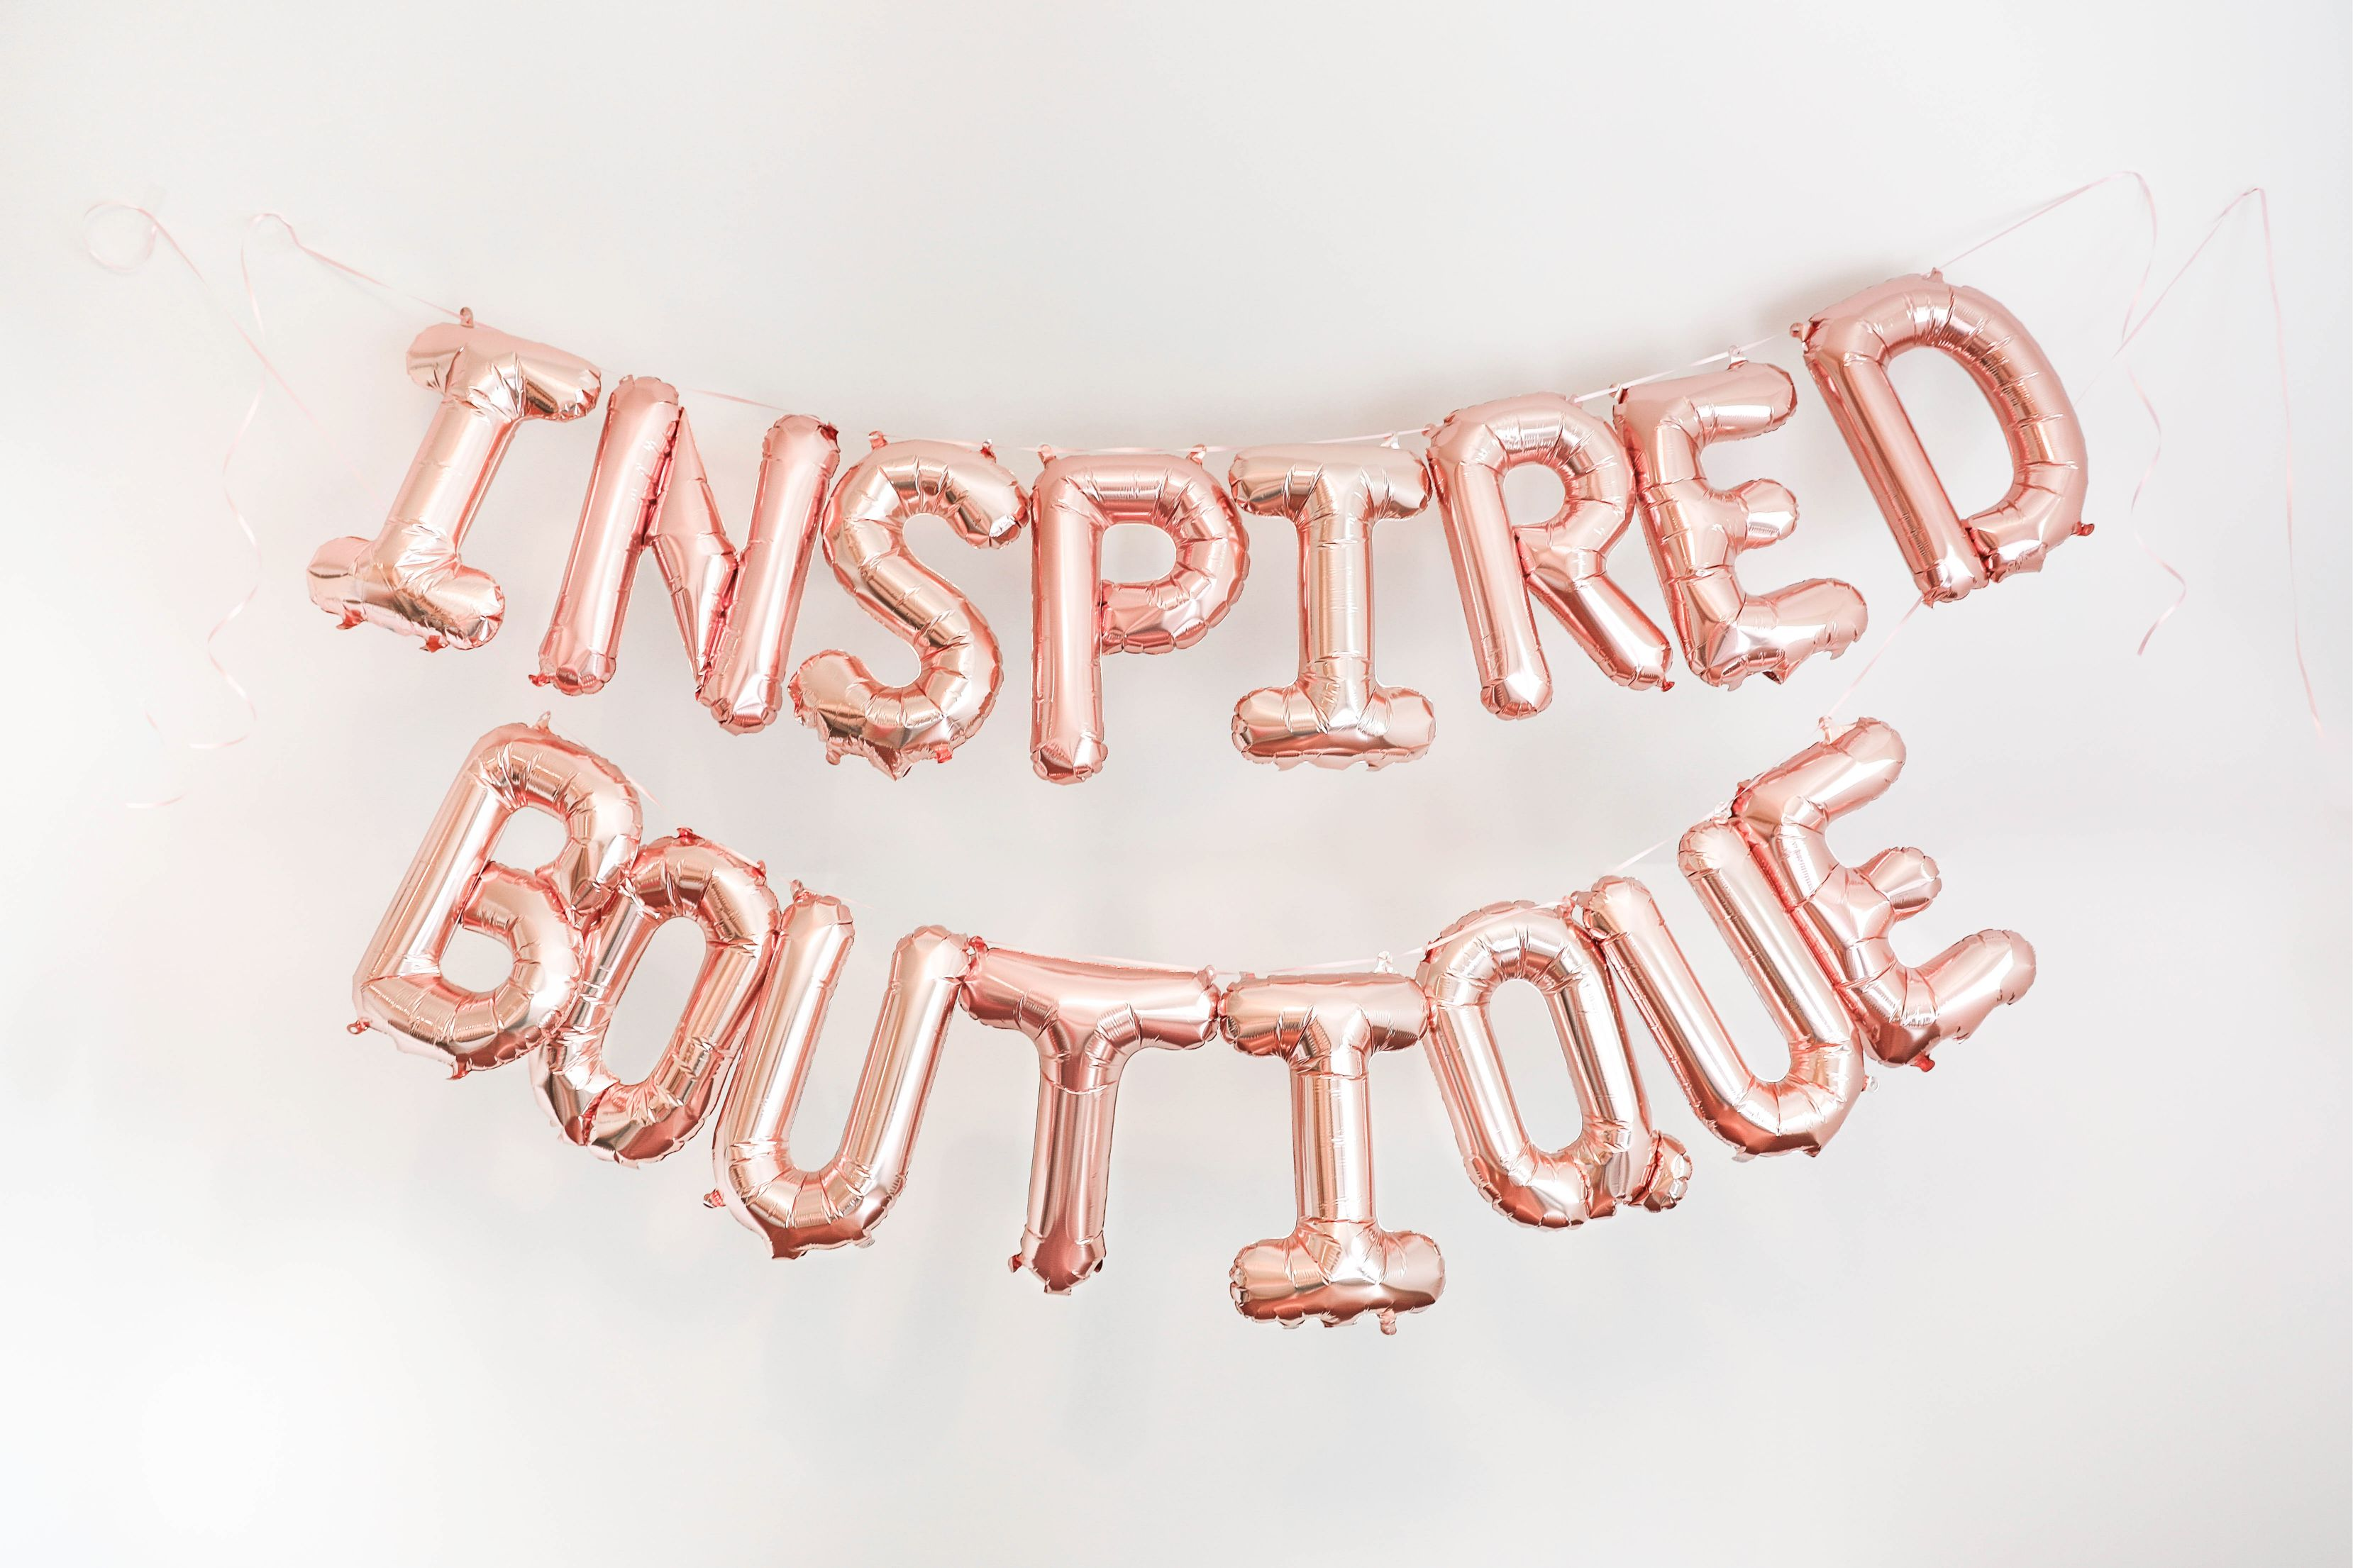 Inspired boutique daily dose of charm lauren lindmark name reveal balloons photoshoot new store ecommerce